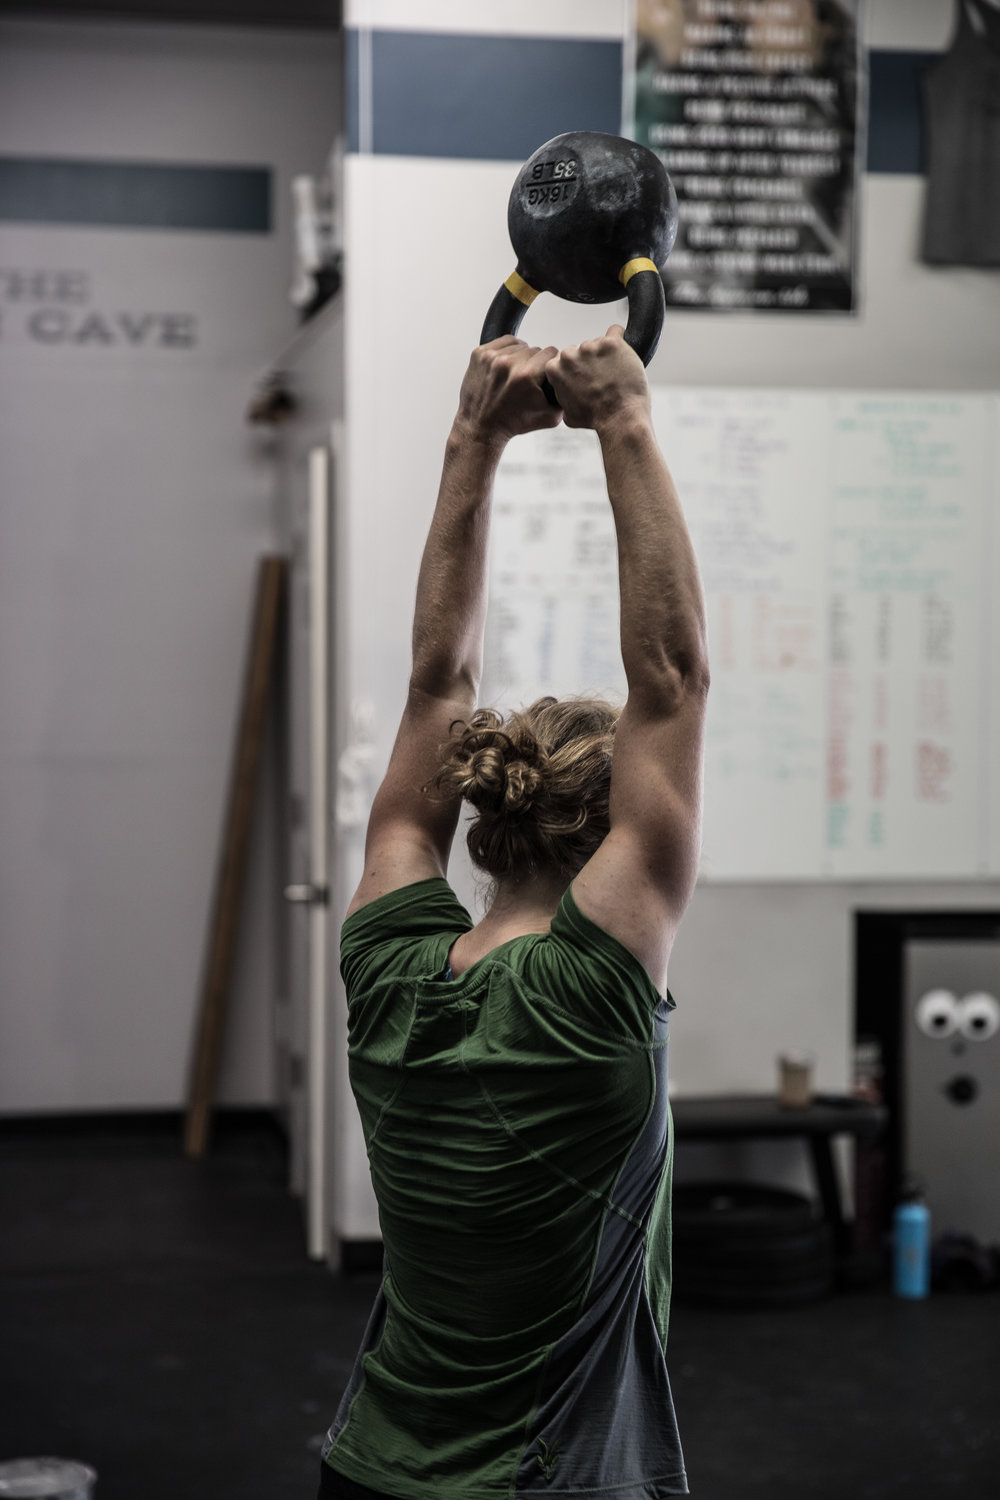 moab gym, gym on 5th, crossfit, crossfit moab